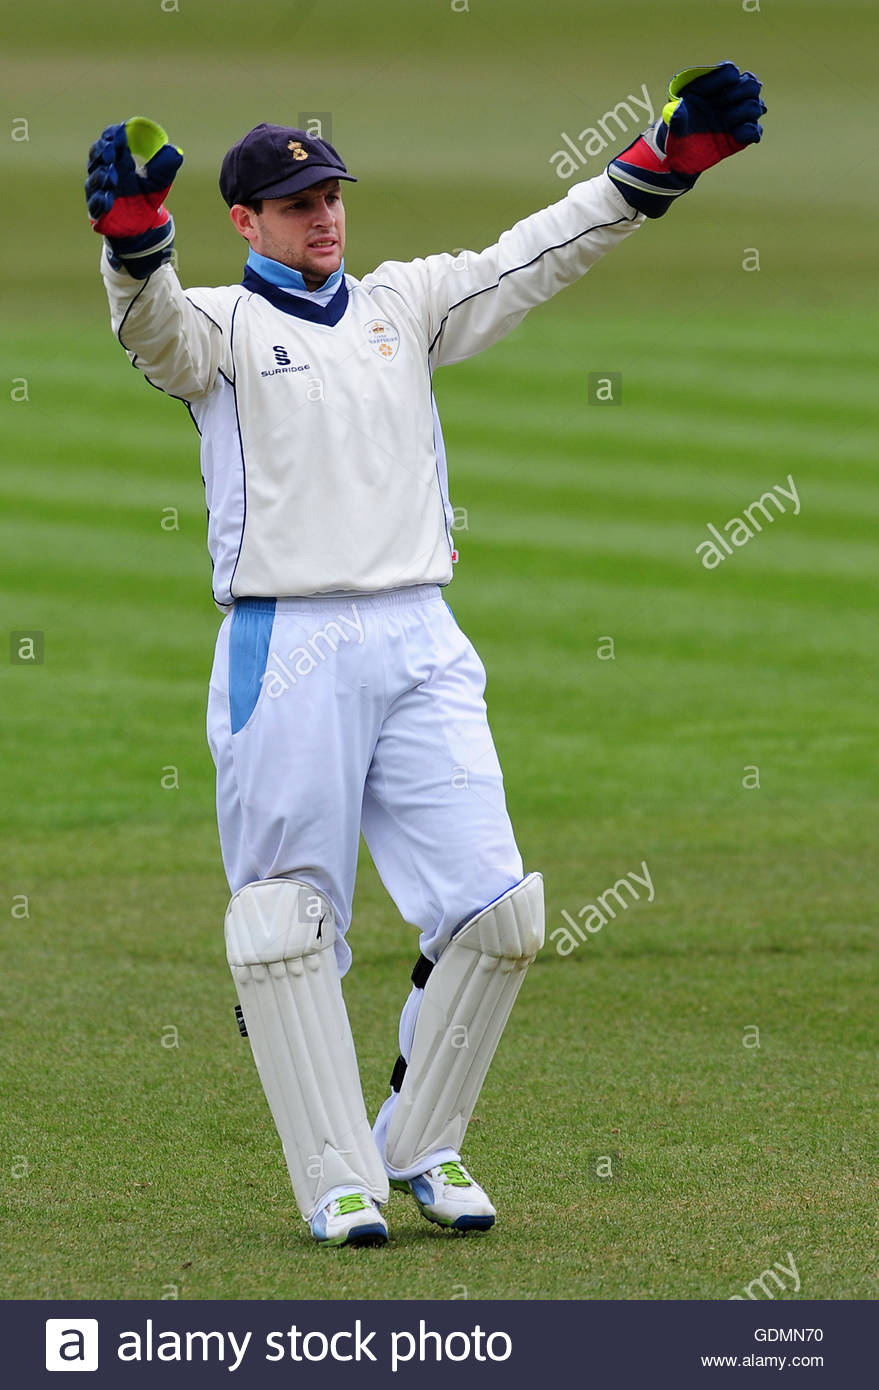 File photo dated 13-04-2013 of Derbyshire's Tom Poynton - Stock Image